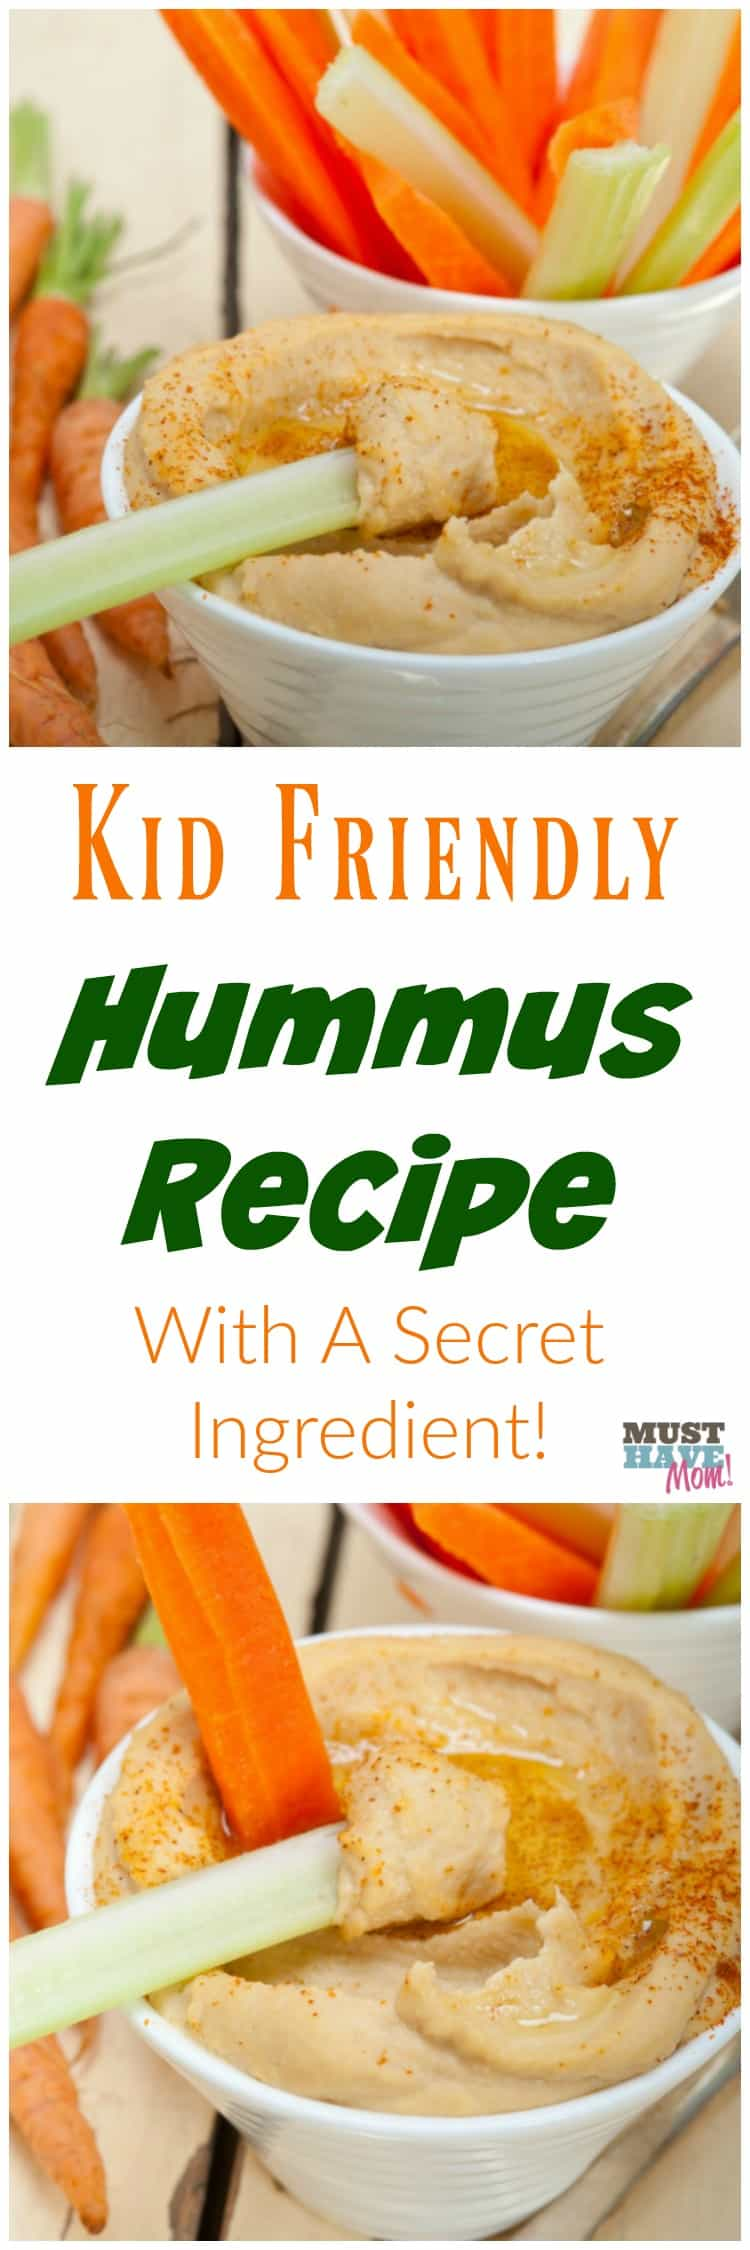 Kid Friendly Hummus Recipe With a Secret Ingredient especially for toddlers! Easy recipe that kids love. Dip carrot and celery sticks or pita bread in it! Grab the recipe and dip those garden veggies in it!